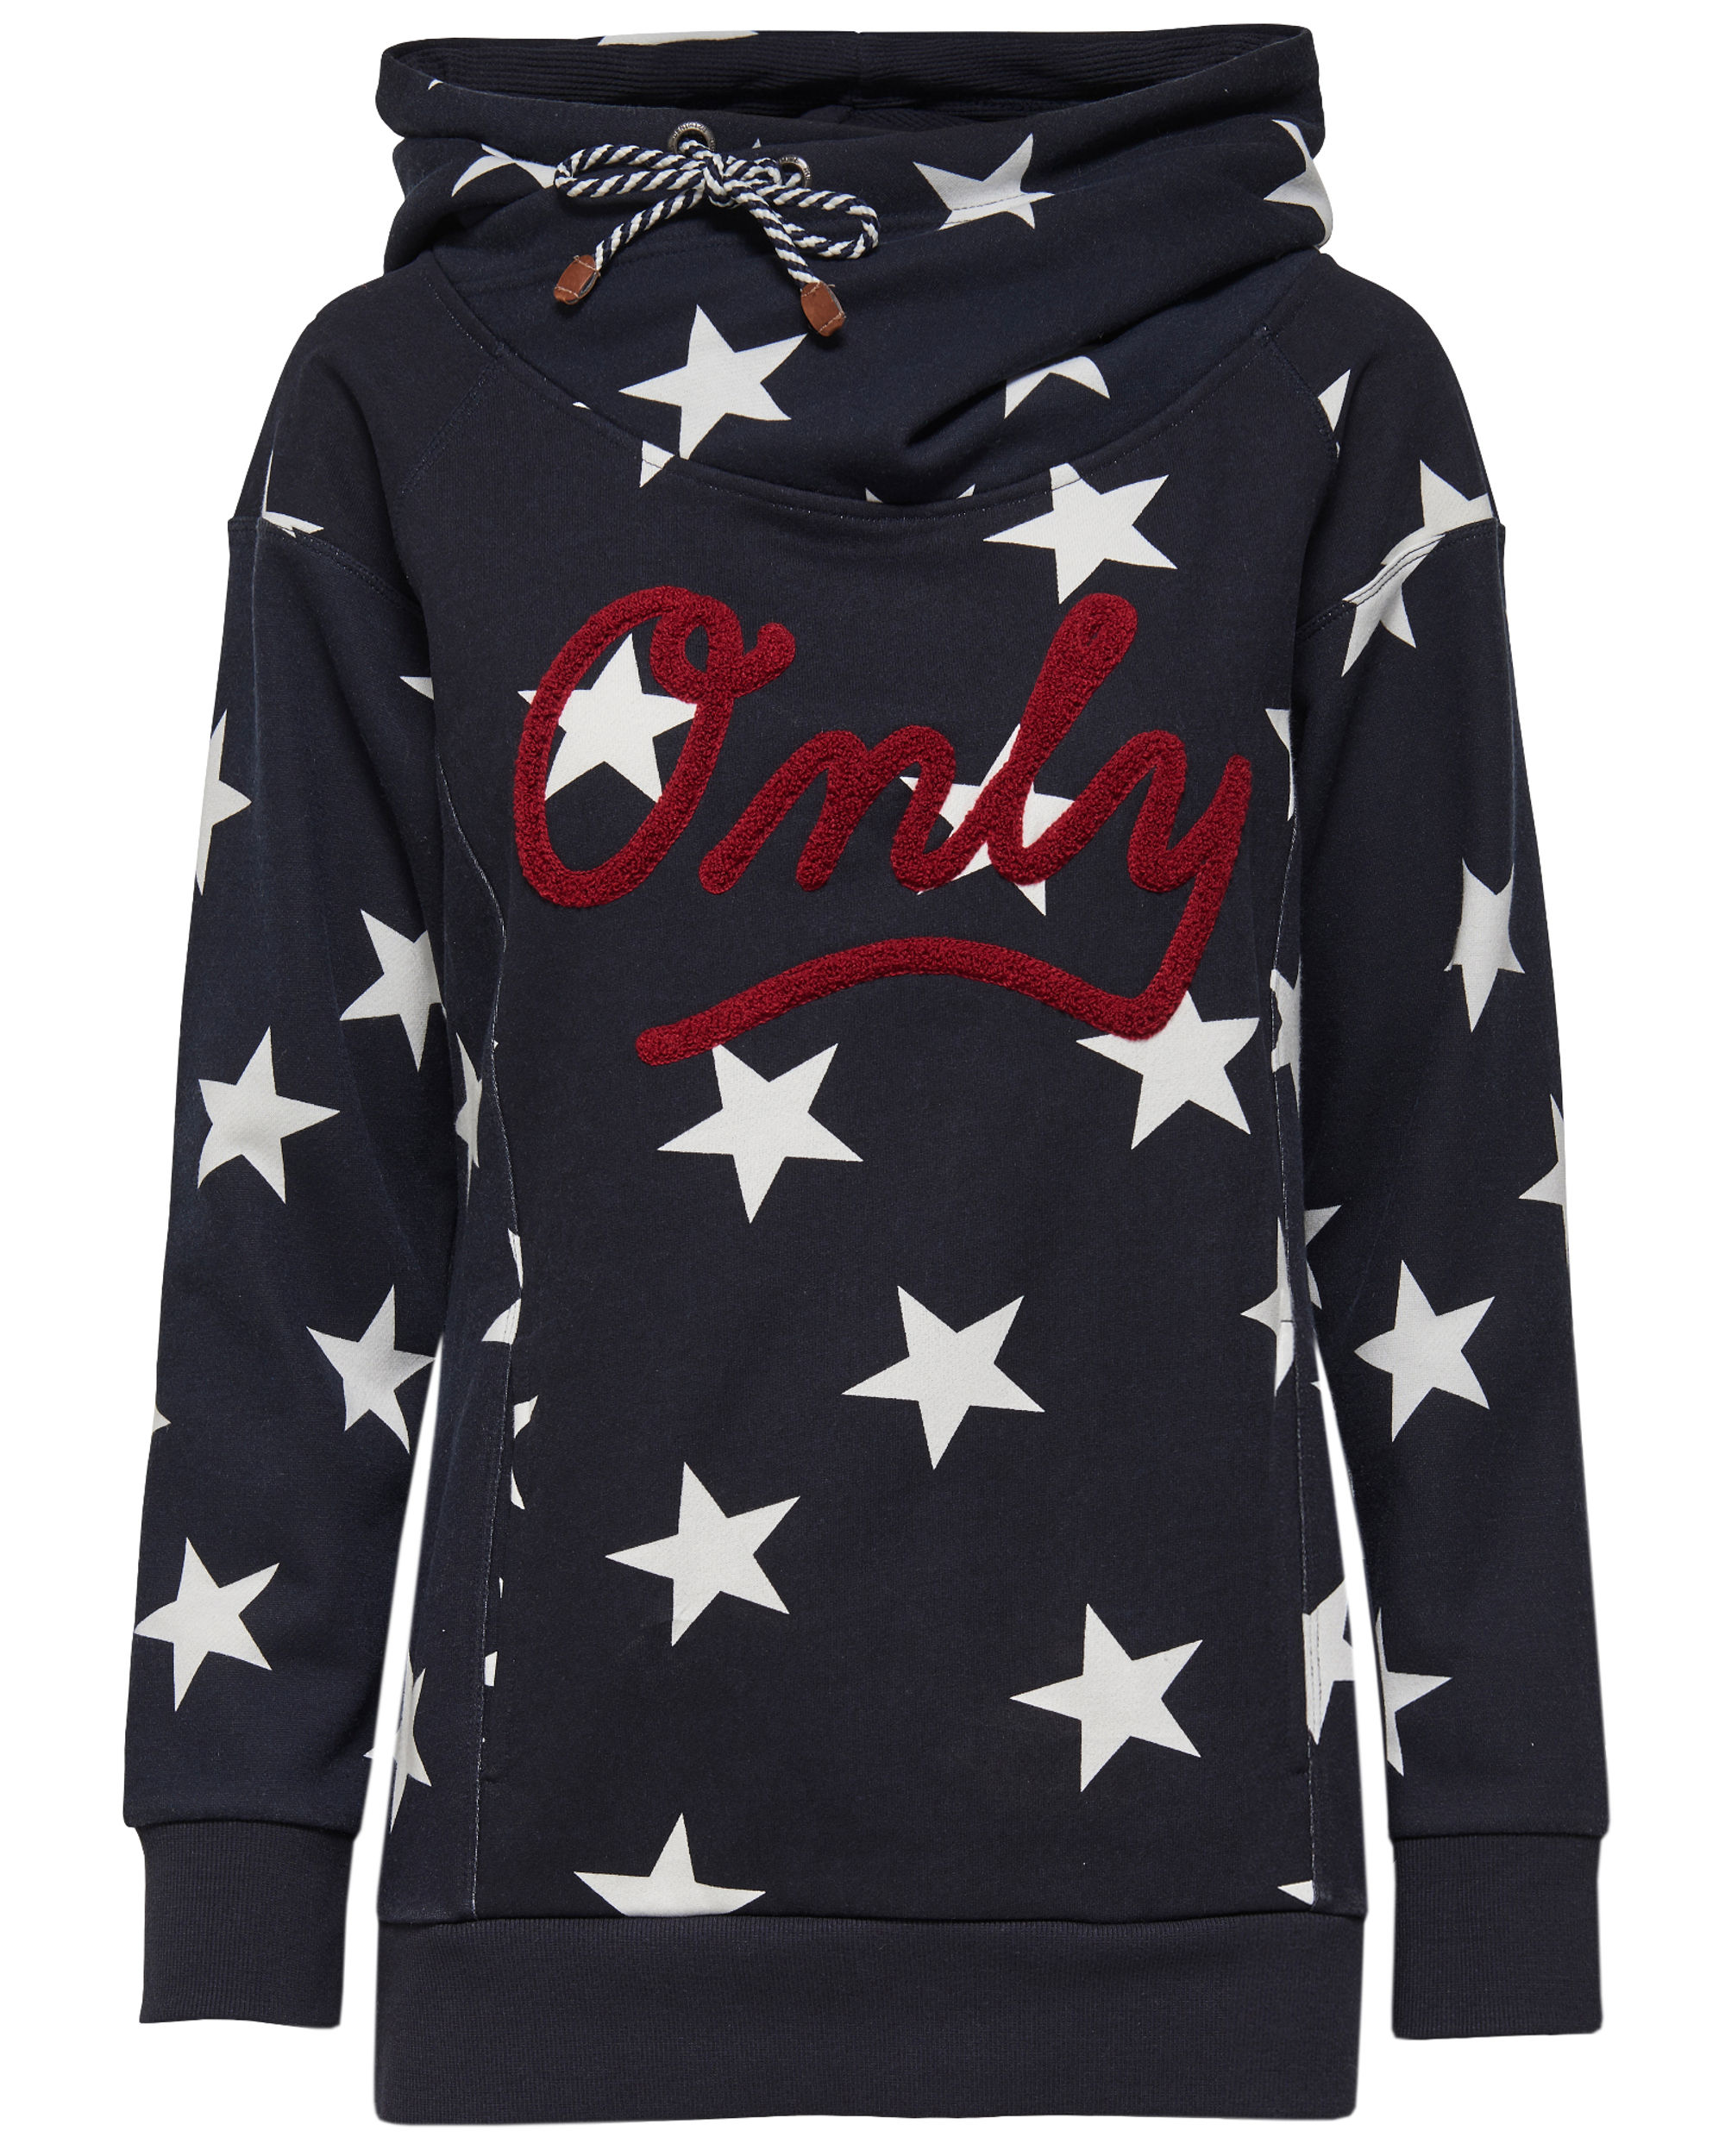 c837a87be130 ONLY Damen Sweatshirt Pullover onlAWESOME Sterne Blitze Hoodie Kapuze